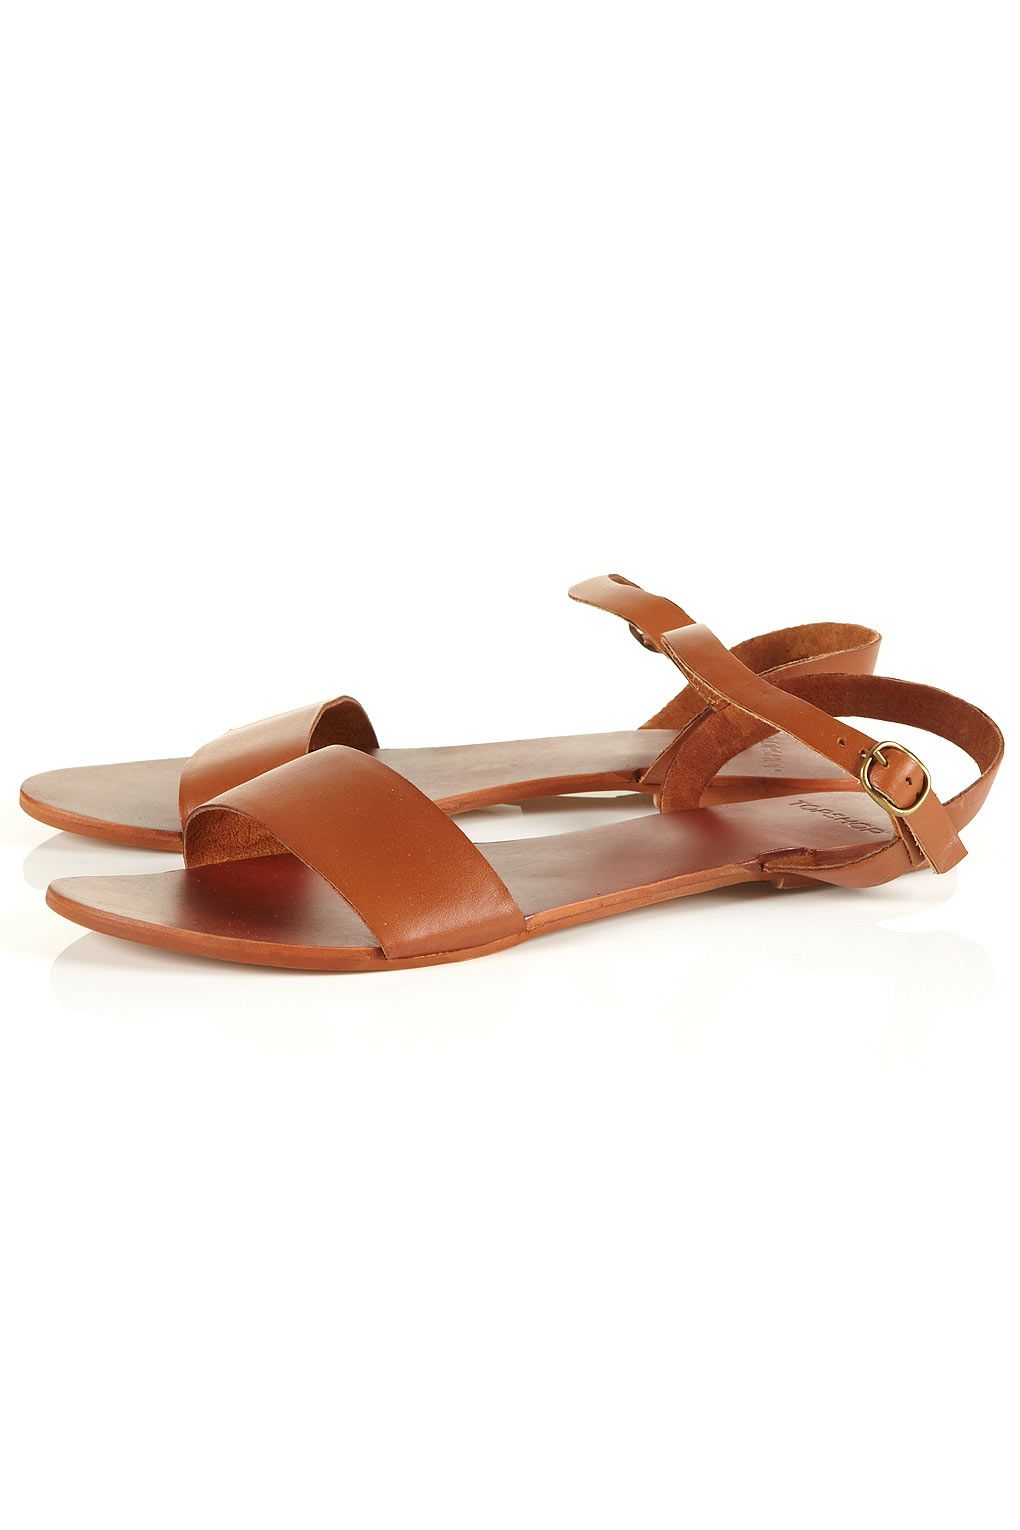 Travel Shoes - HOUPLA LEATHER STRAP SANDALS    Price:$36.00